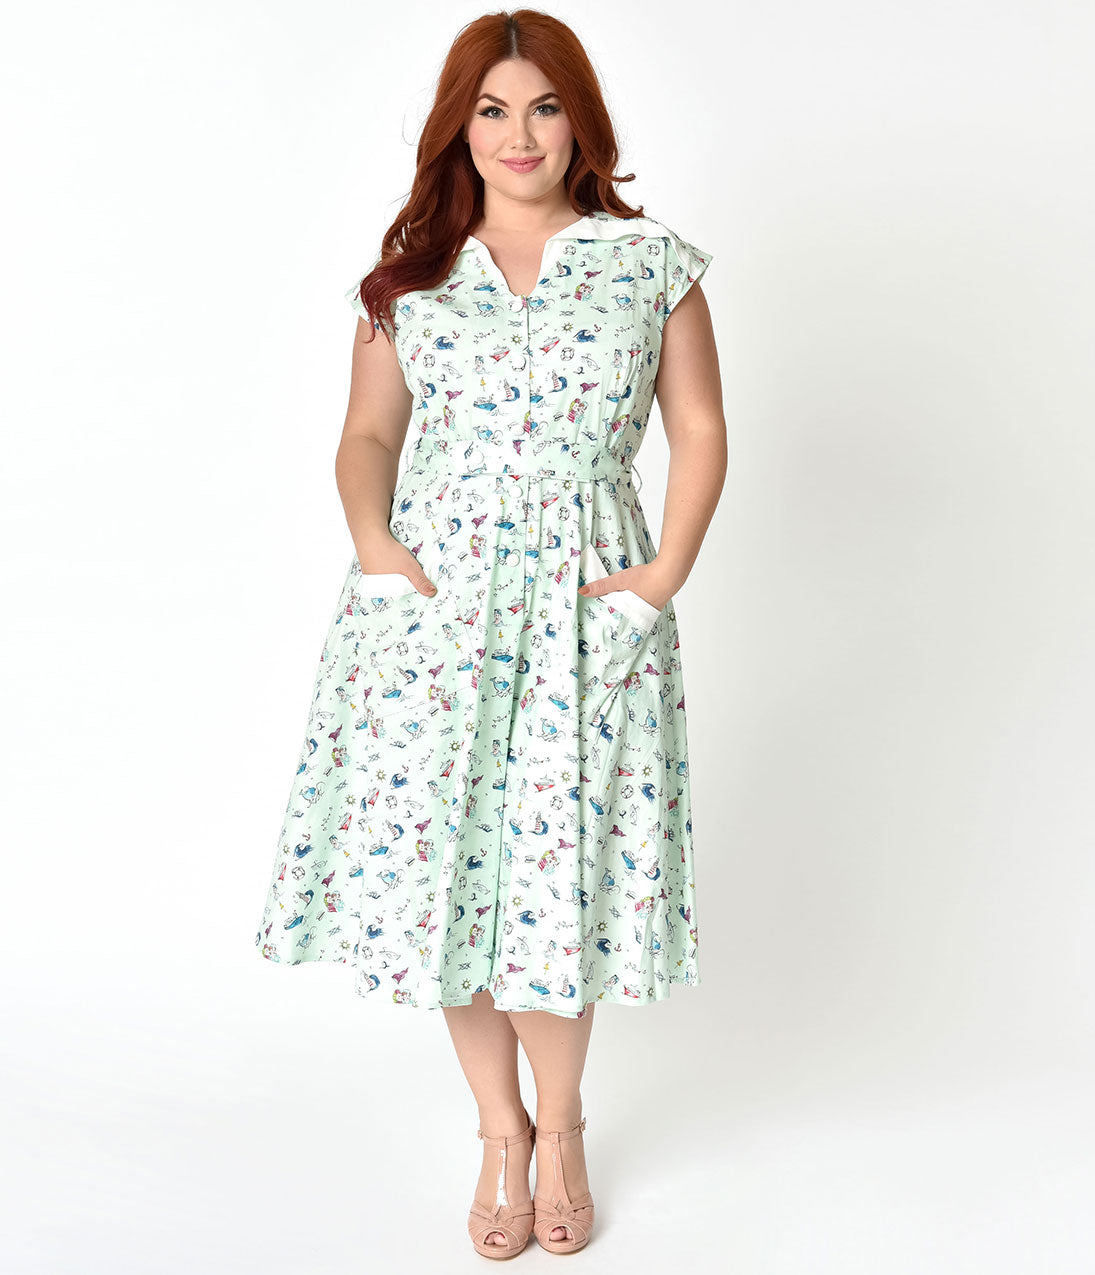 Pin Up Dresses | Pin Up Clothing Unique Vintage Plus Size 1950S Style Mint  Sailor Print Cap Sleeve Hedda Swing Dress $128.00 AT vintagedancer.com